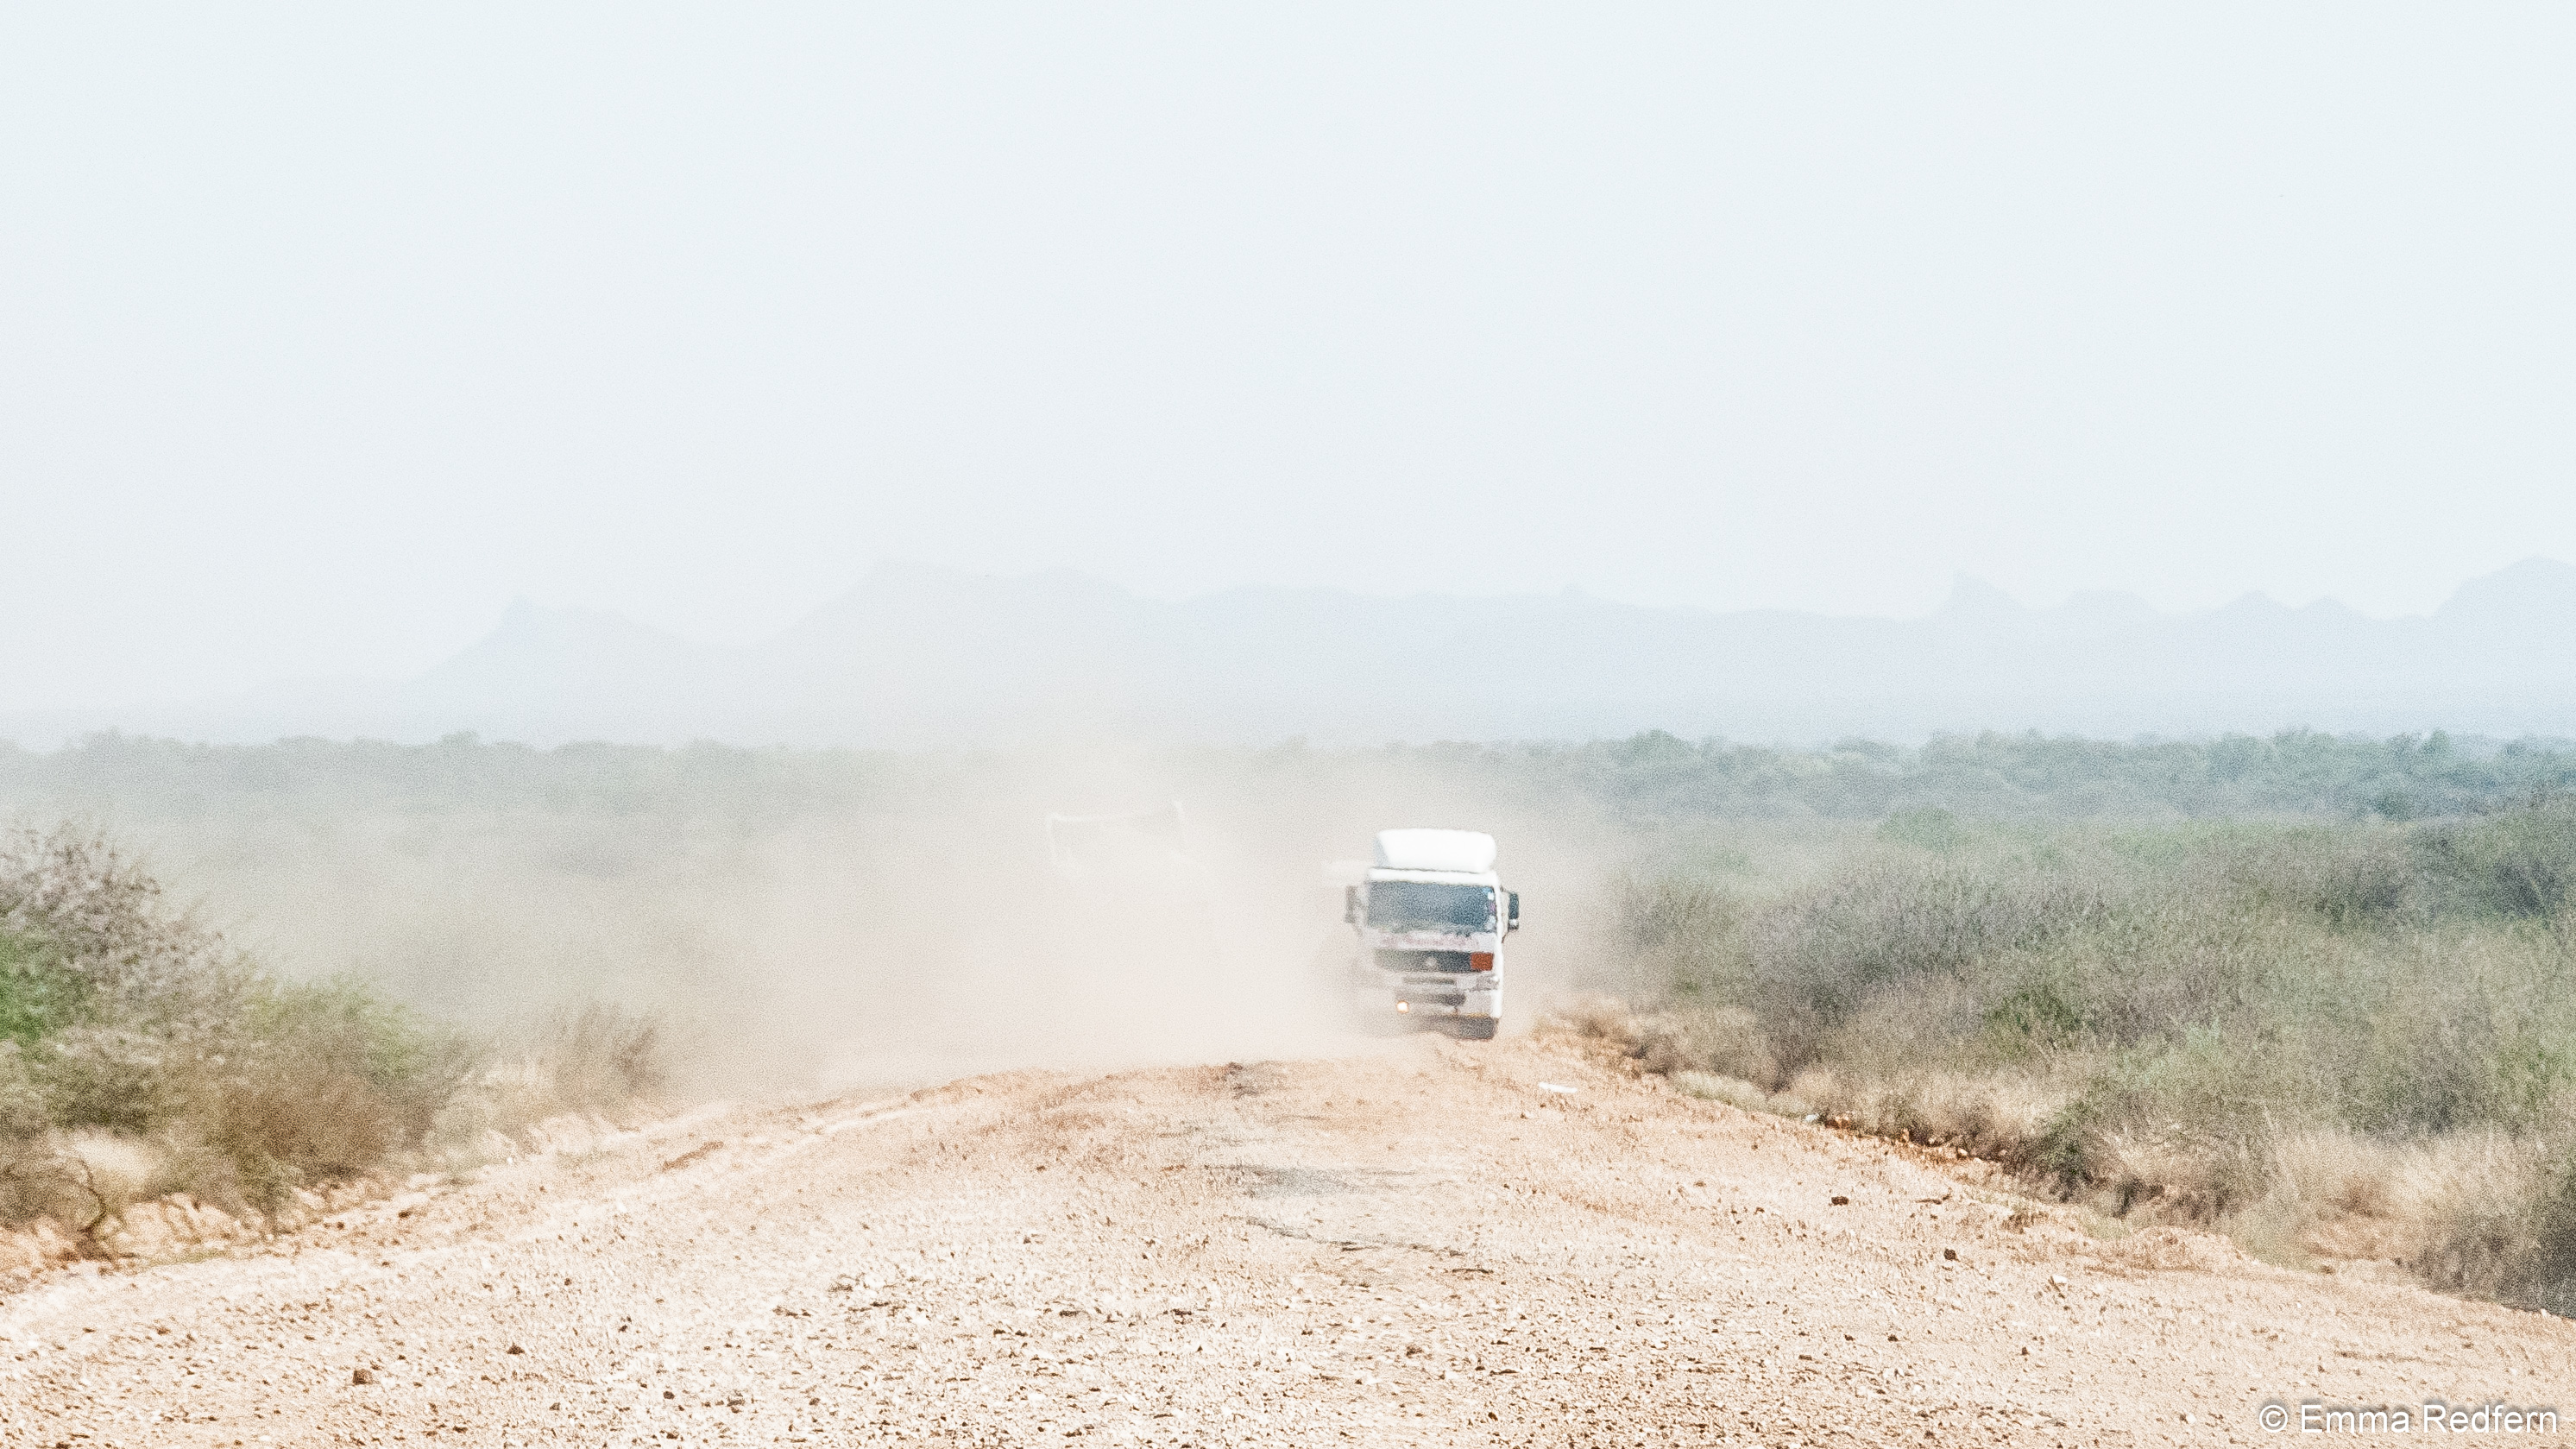 Trucks on the road to Lodwar